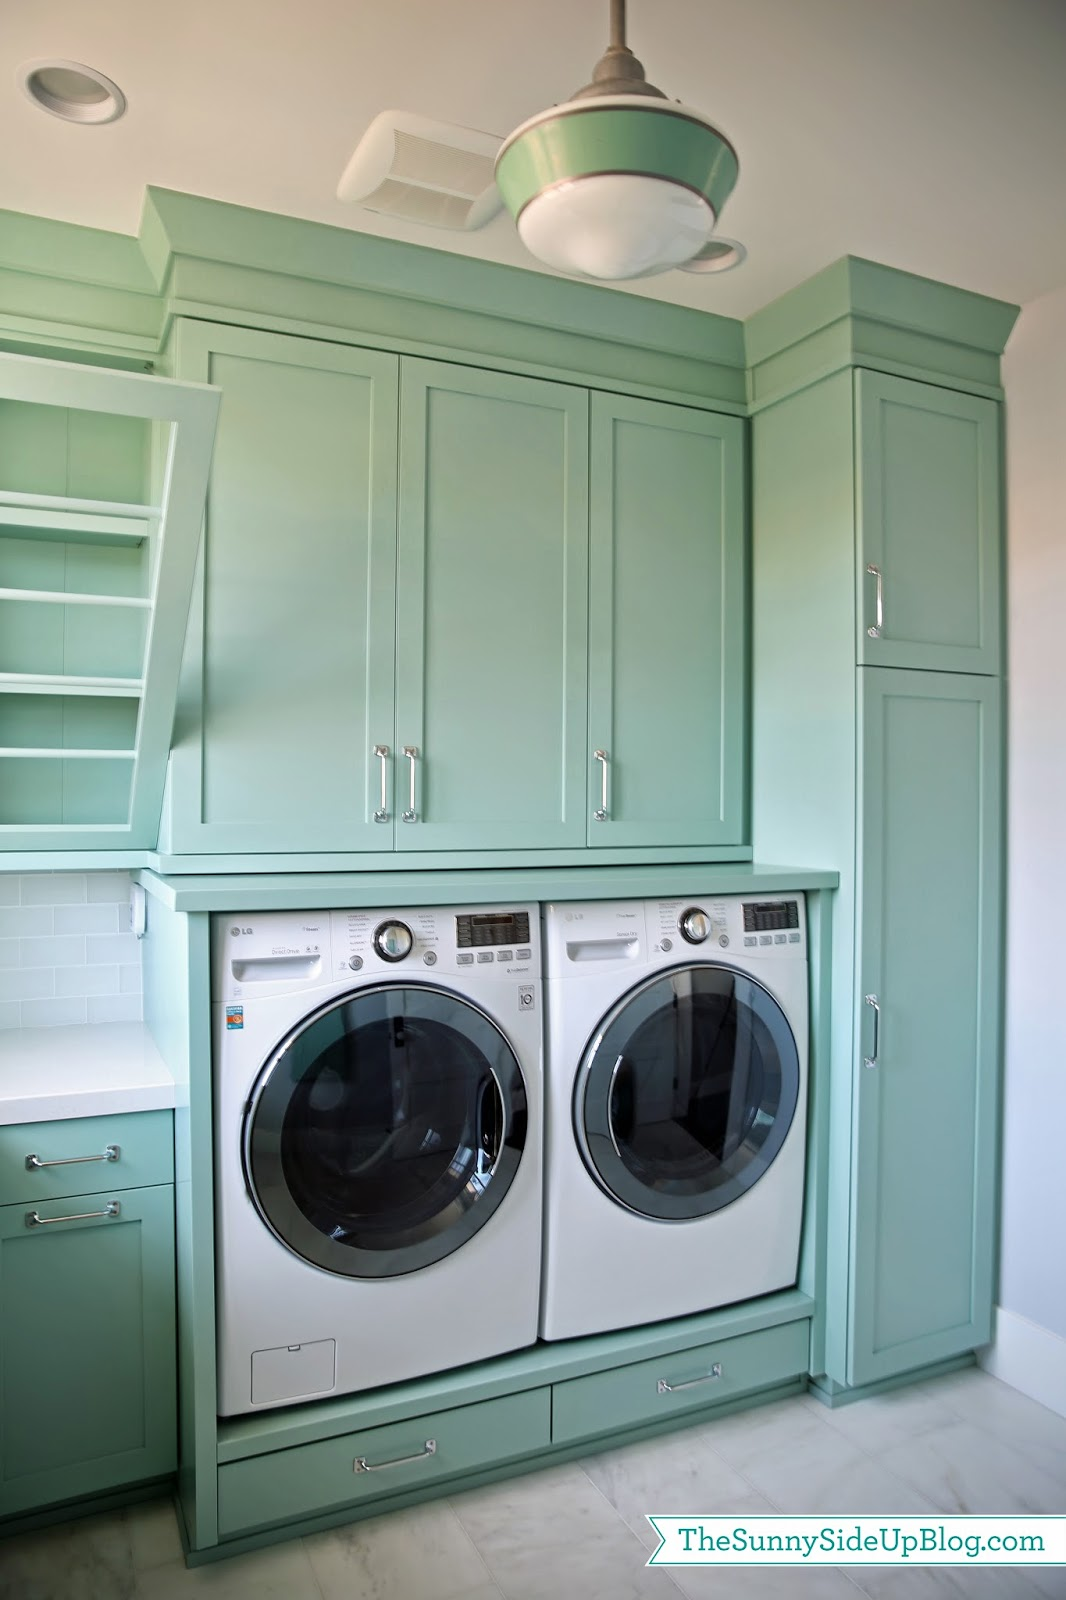 Upstairs Laundry Room - The Sunny Side Up Blog on Laundry Cabinets  id=91441